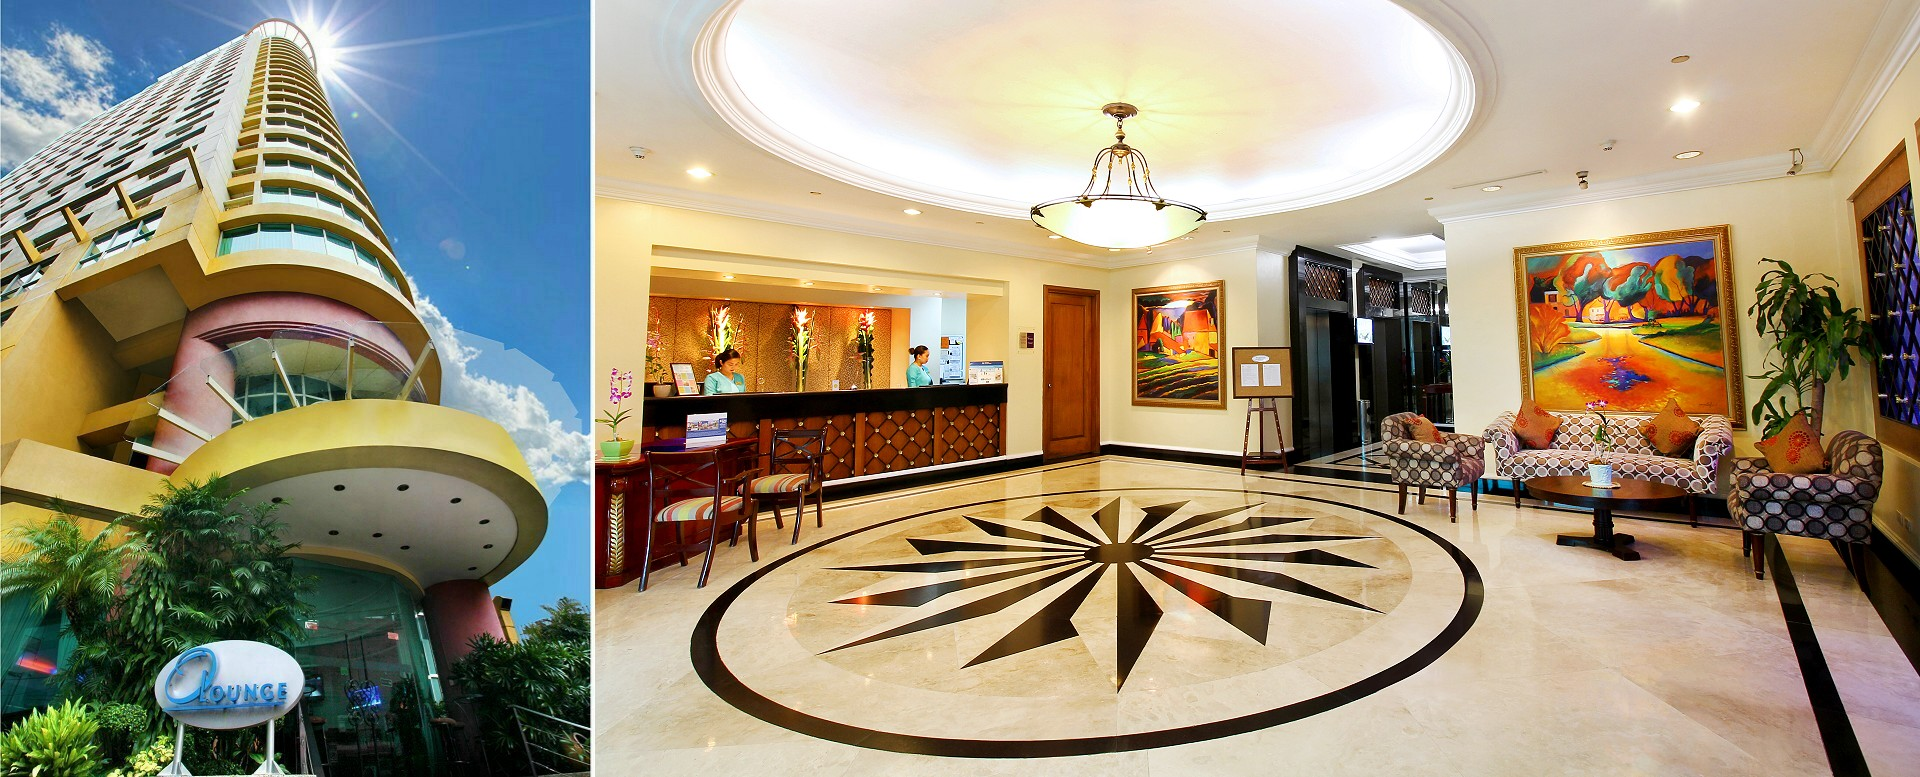 Best Western Oxford Suites - Lobby